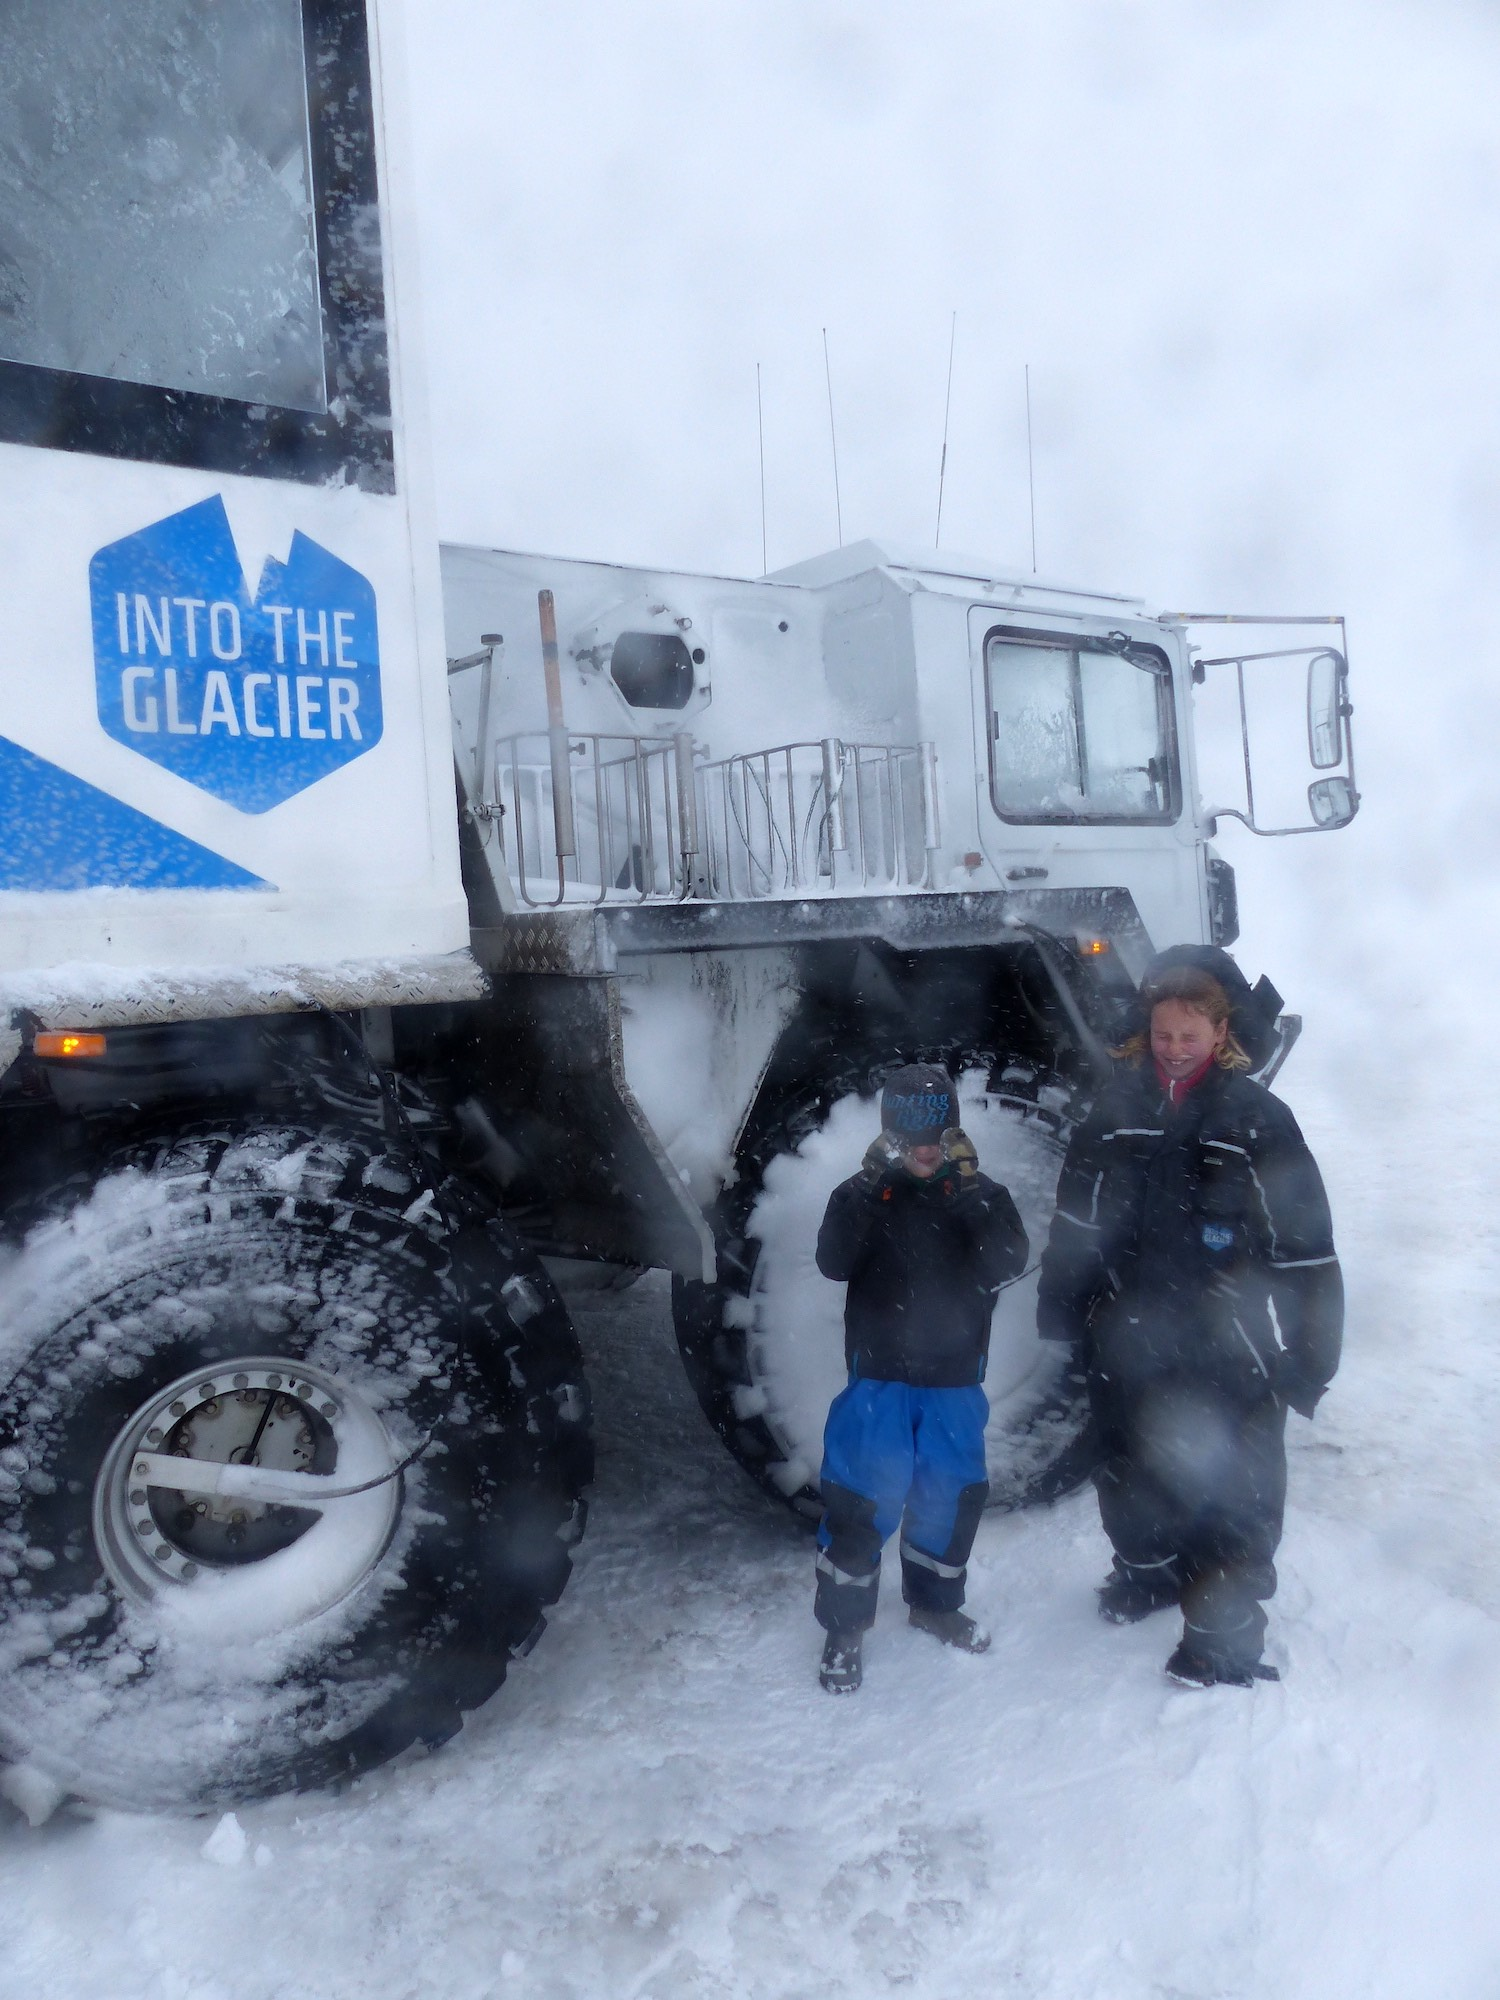 MAISIE, JOE AND THE MONSER TRUCK. IN A BLIZZARD!